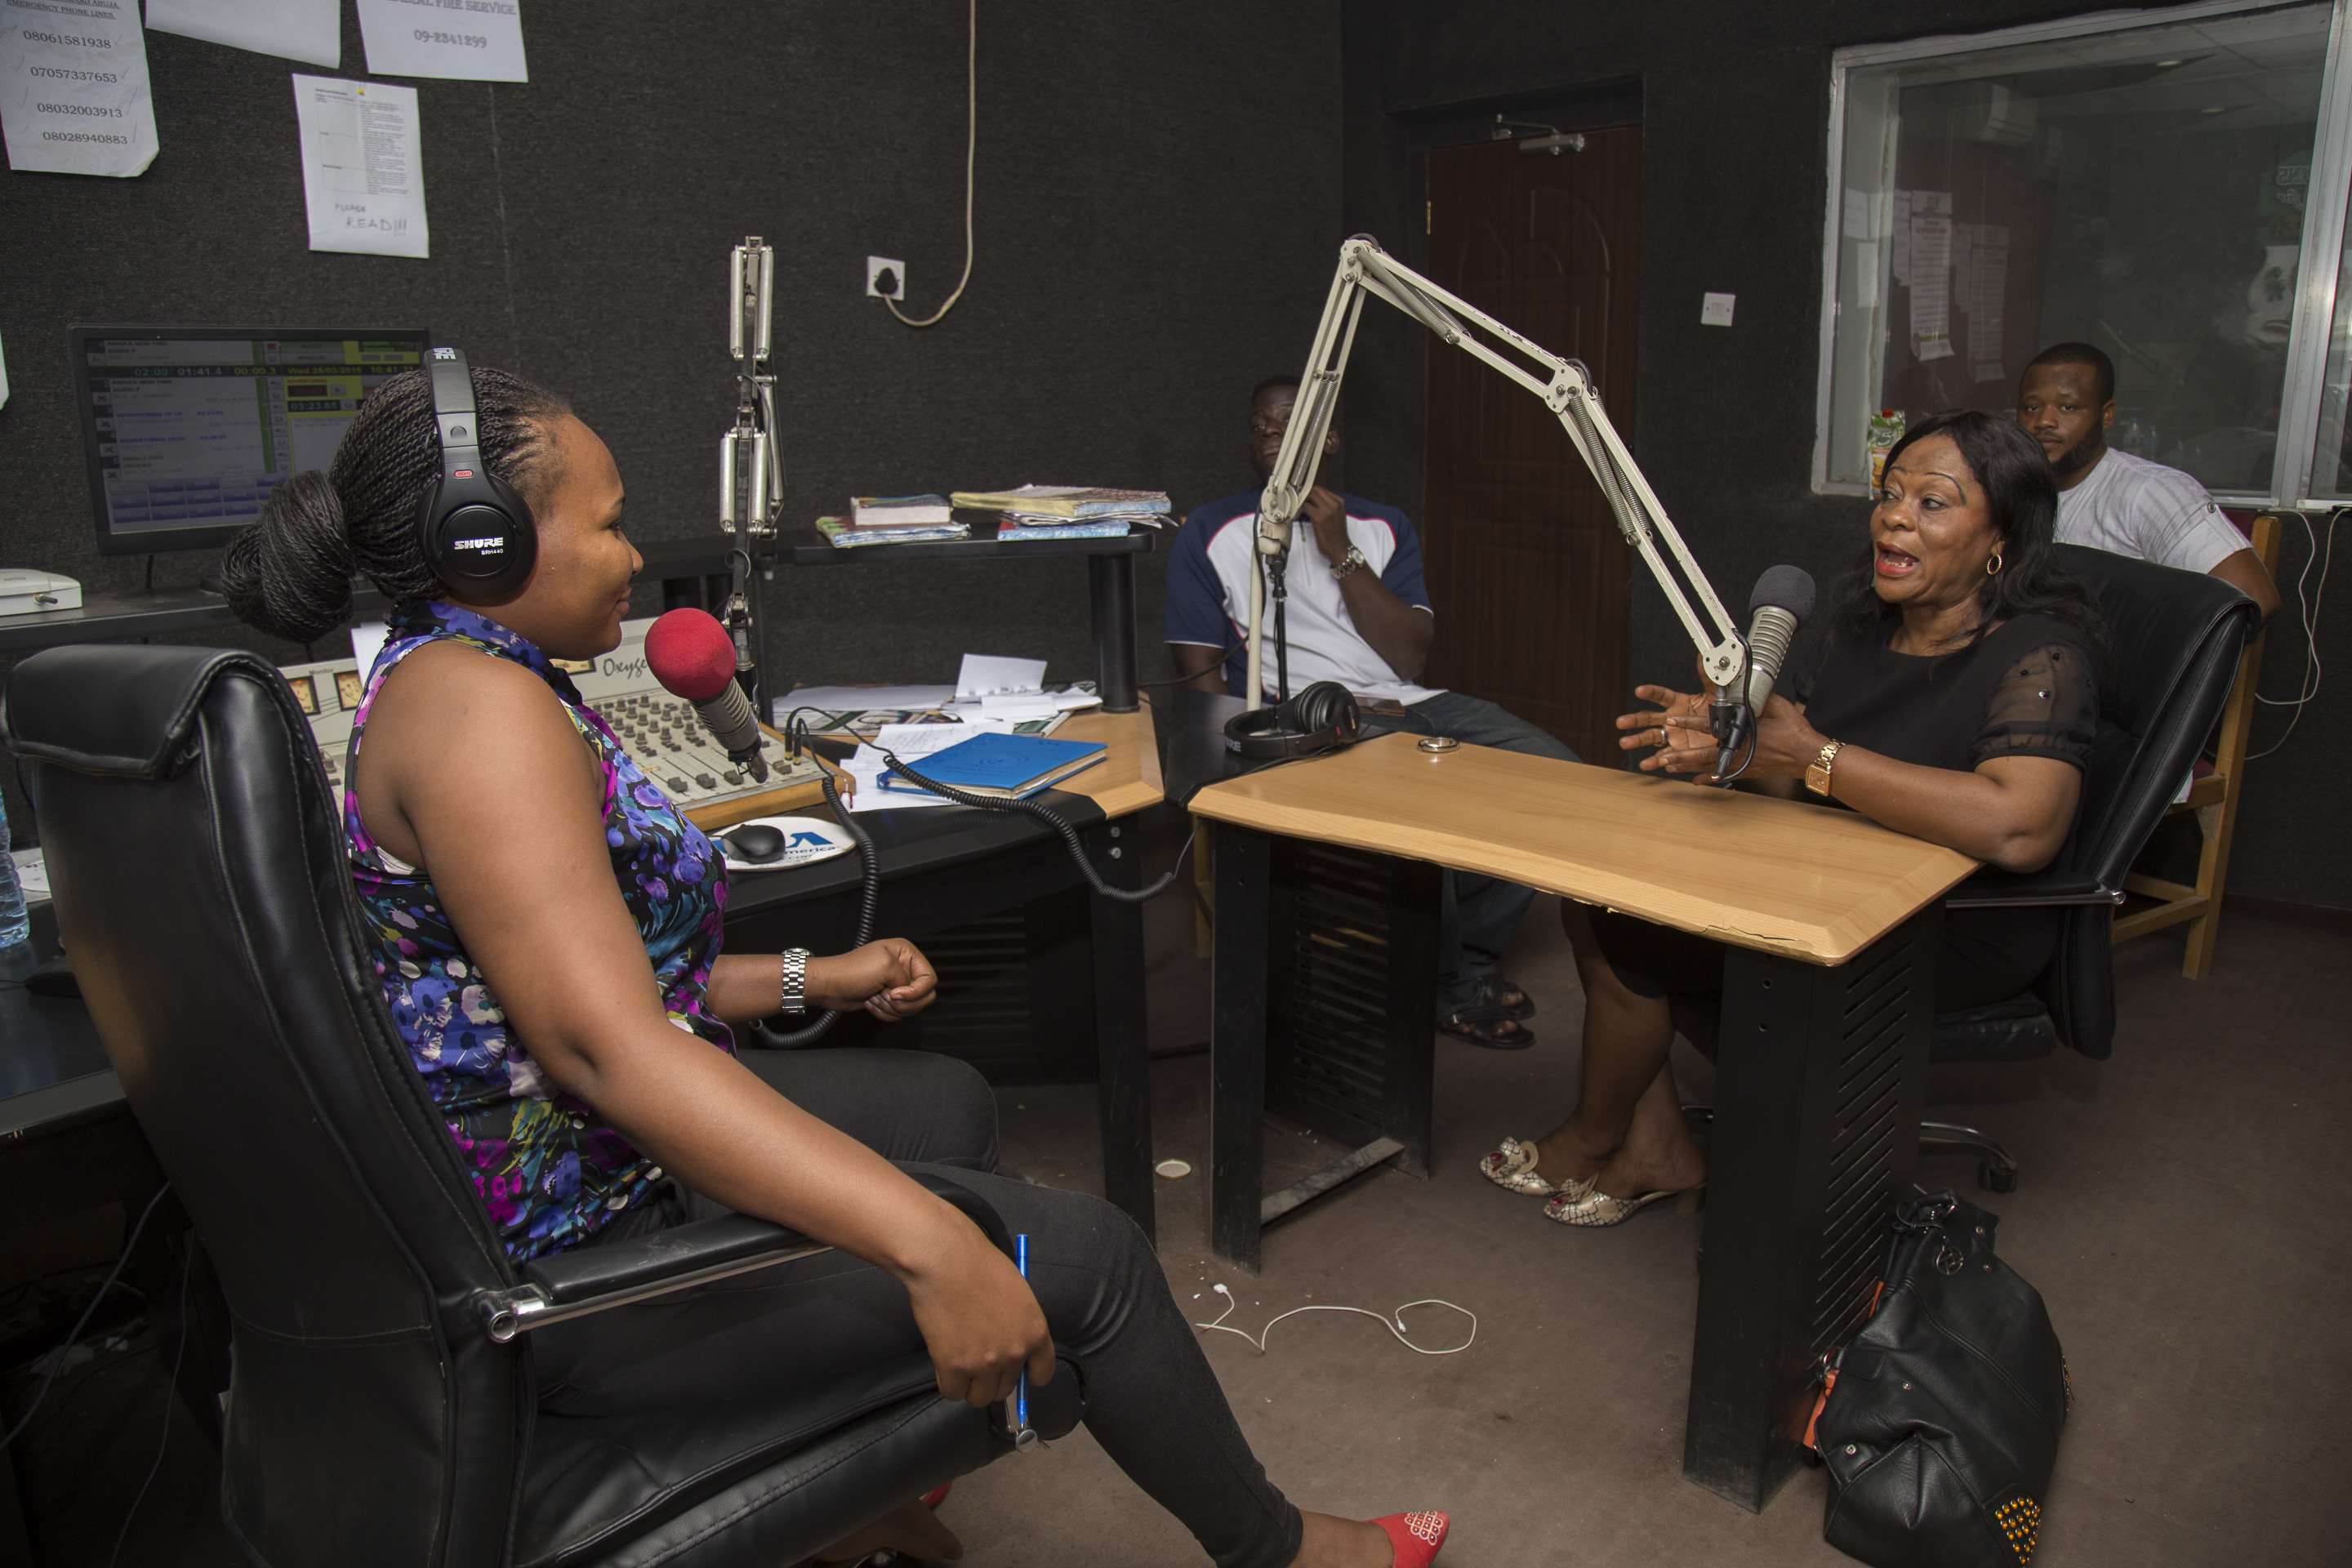 amaka hot fm and the author